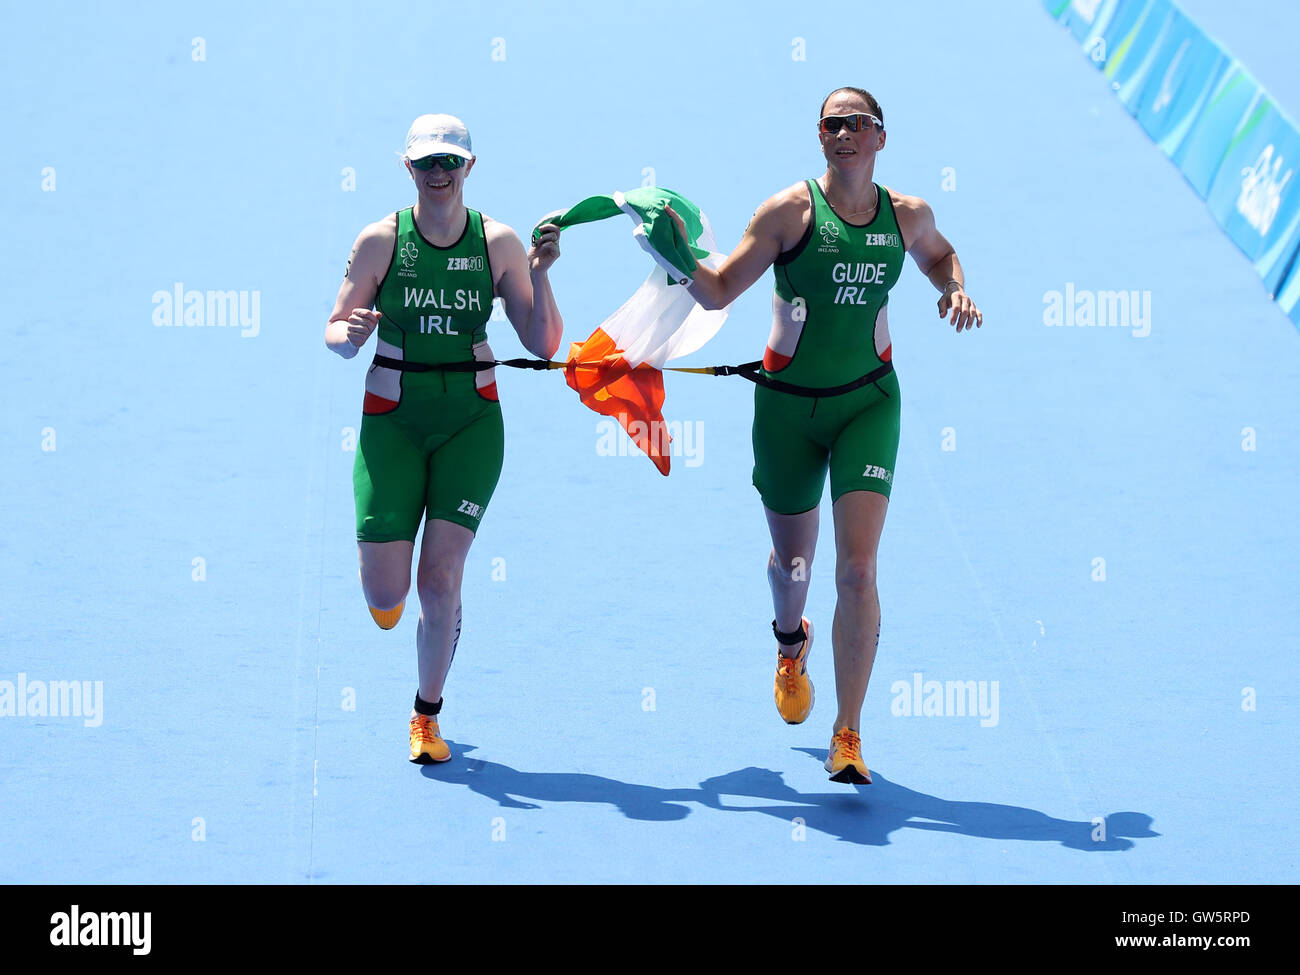 Ireland's Catherine Walsh (left) and guide in action during the Women's PT5  Triathlon during the fourth day of the 2016 Rio Paralympic Games in Rio de  ...